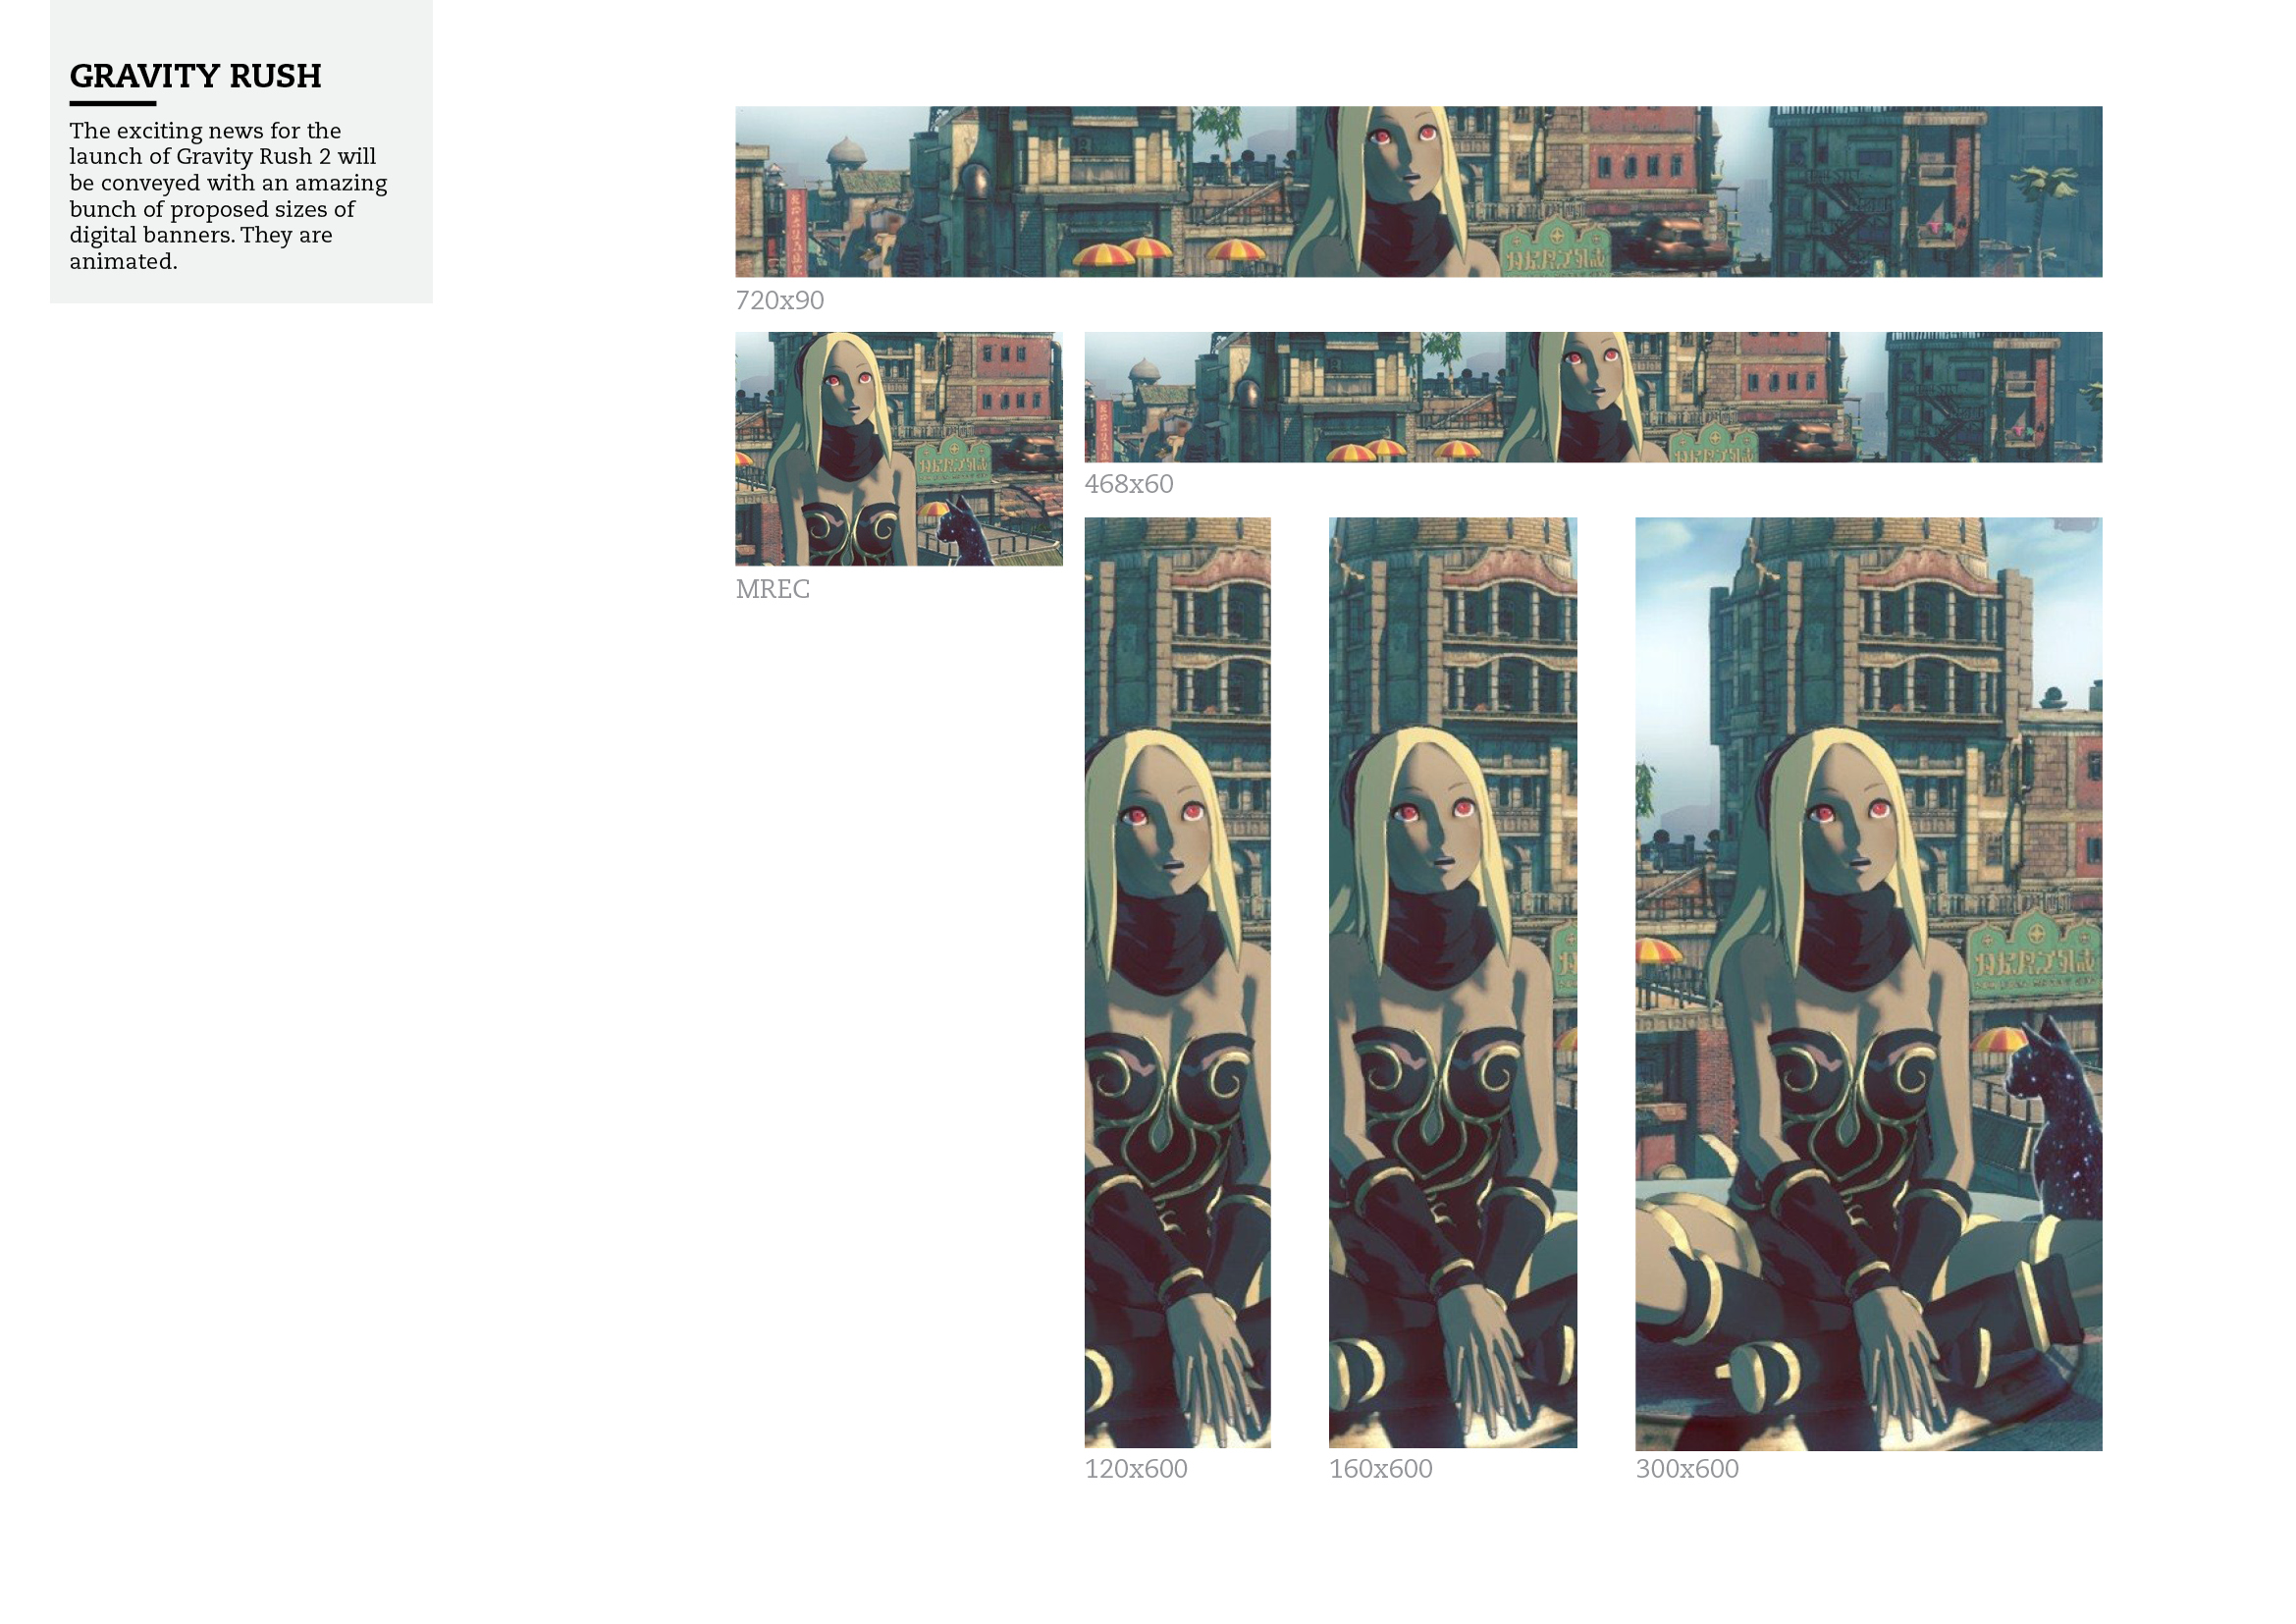 The exciting news for the launch of Gravity Rush 2 will be conveyed with an amazing bunch of proposed sizes of digital banners. They are animated.